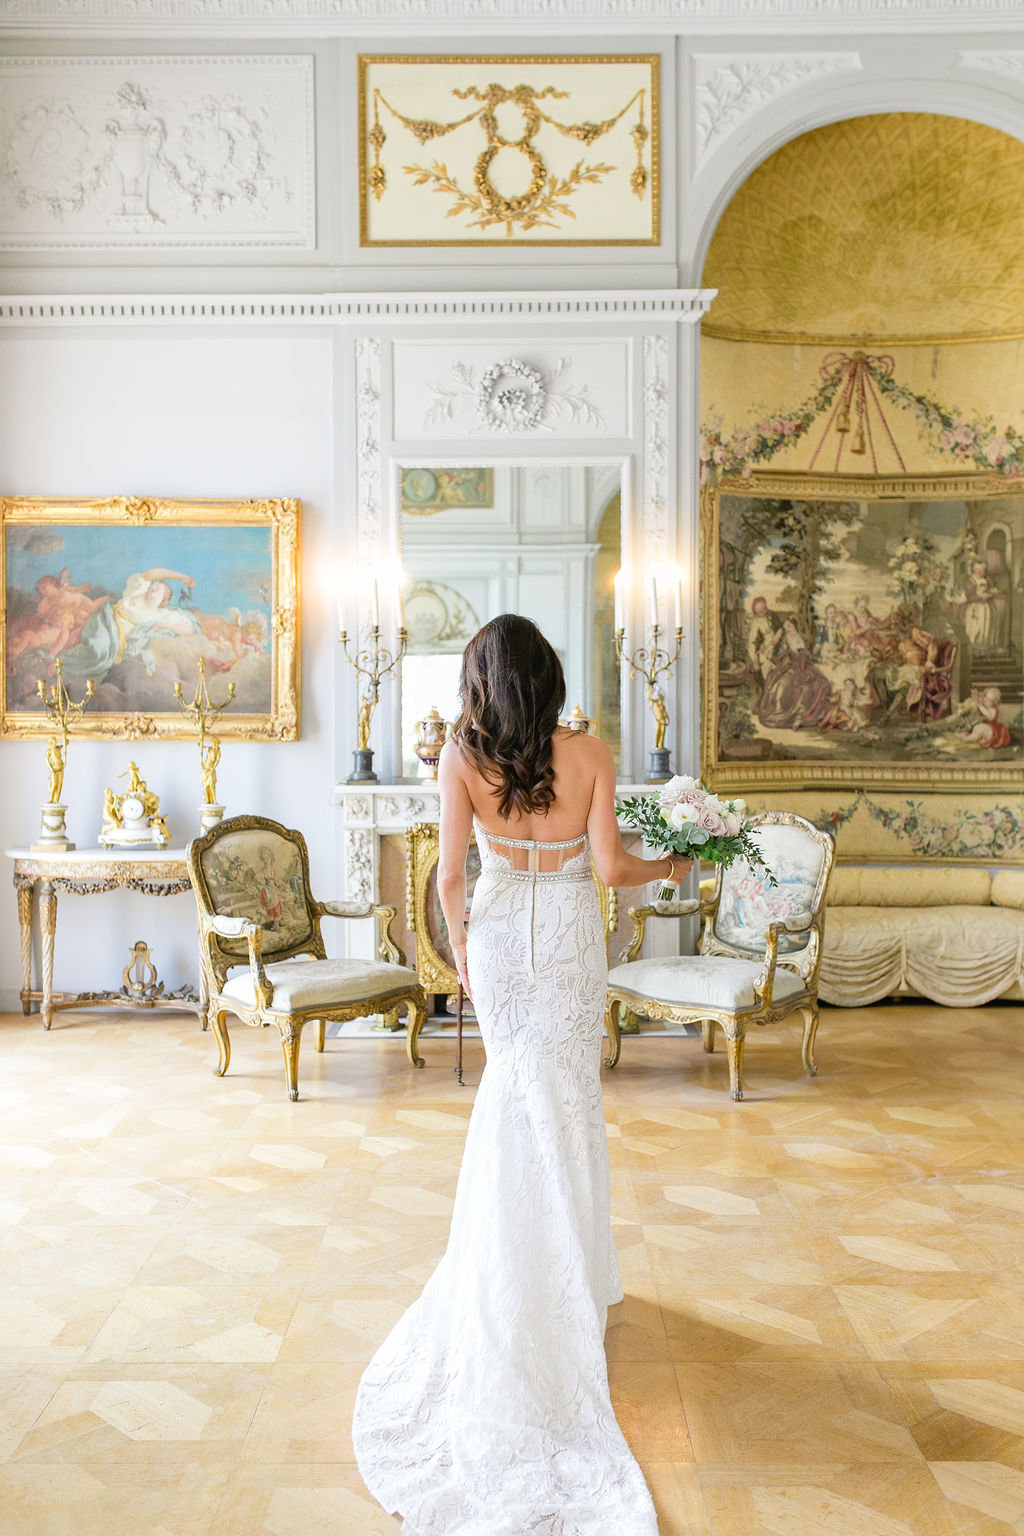 south-france-wedding-photographer-roberta-facchini-photography-118